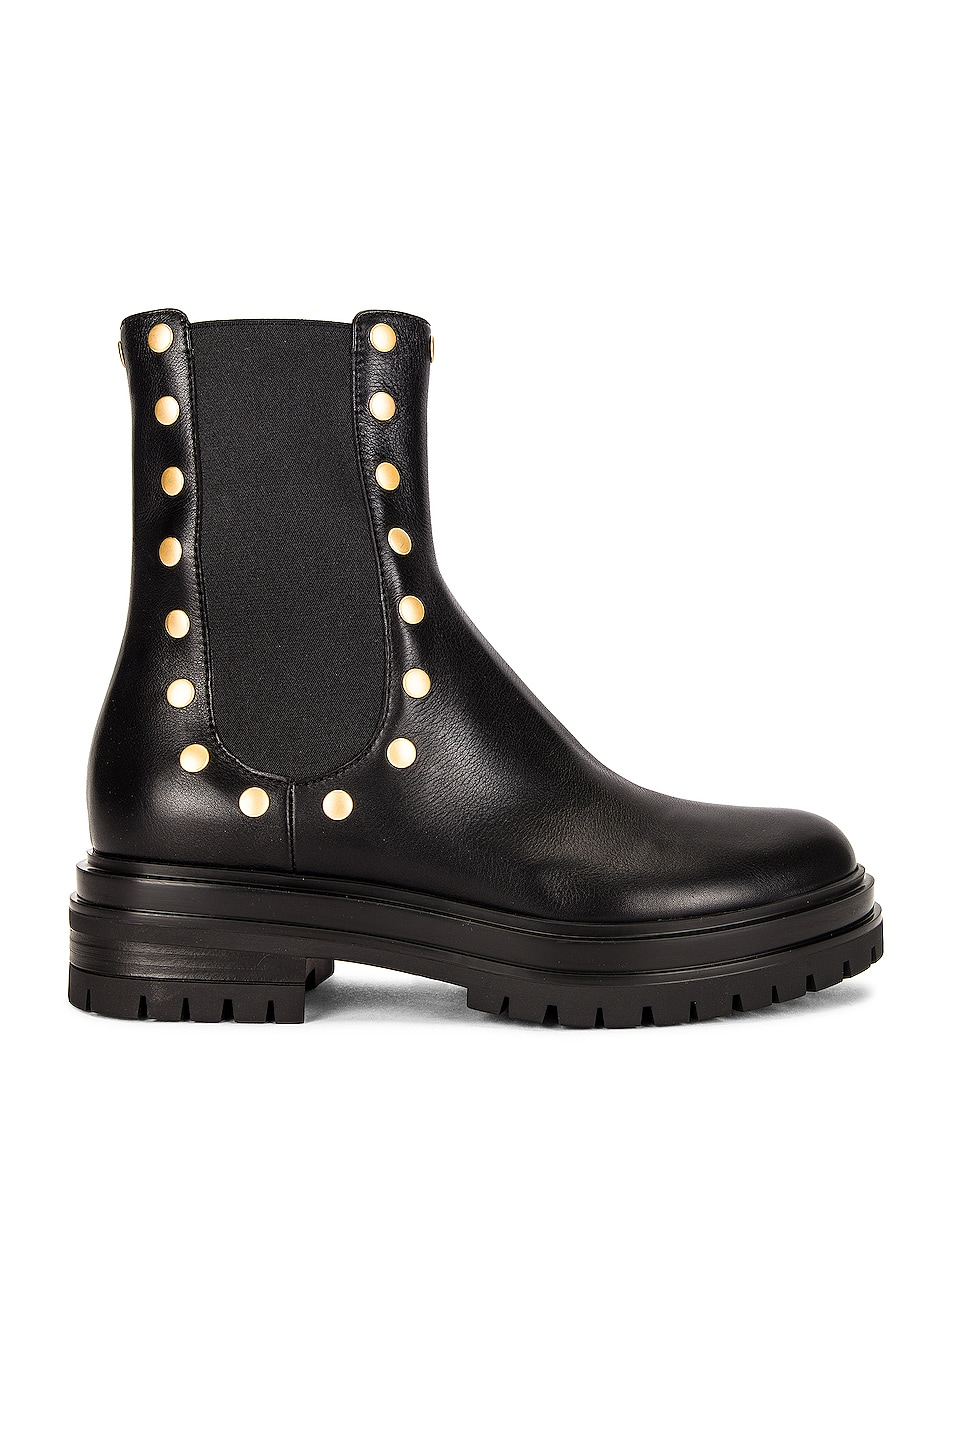 Image 1 of Gianvito Rossi Flair Stud Boots in Black